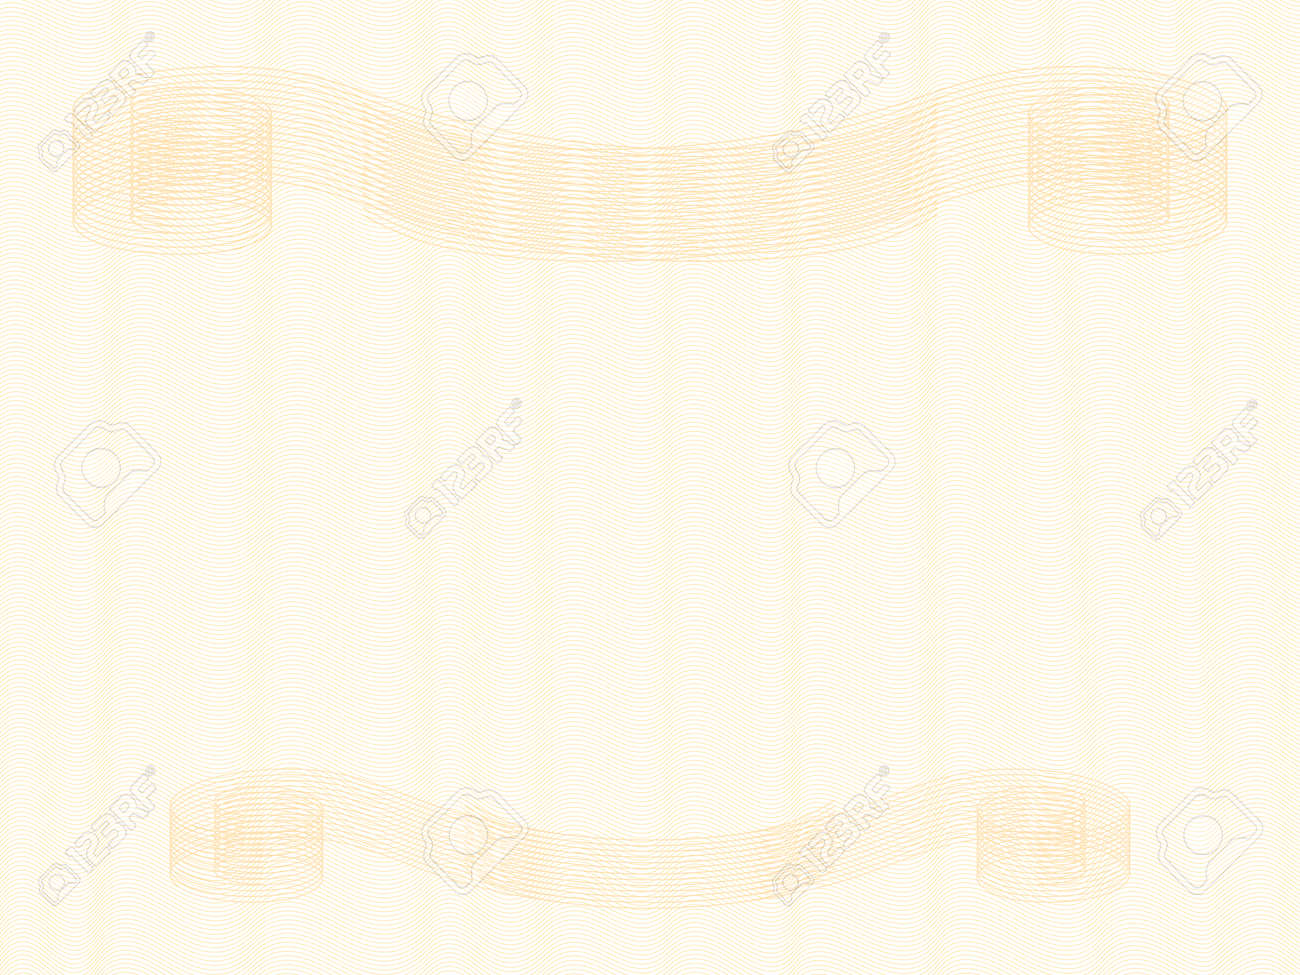 Diploma, certificate template with gold vintage vignettes. Zigzag pattern. Elegant ornament, curled lines. Pastel guilloche, watermark design. Vector abstract background. Landscape orientation. EPS10 illustration - 164614605